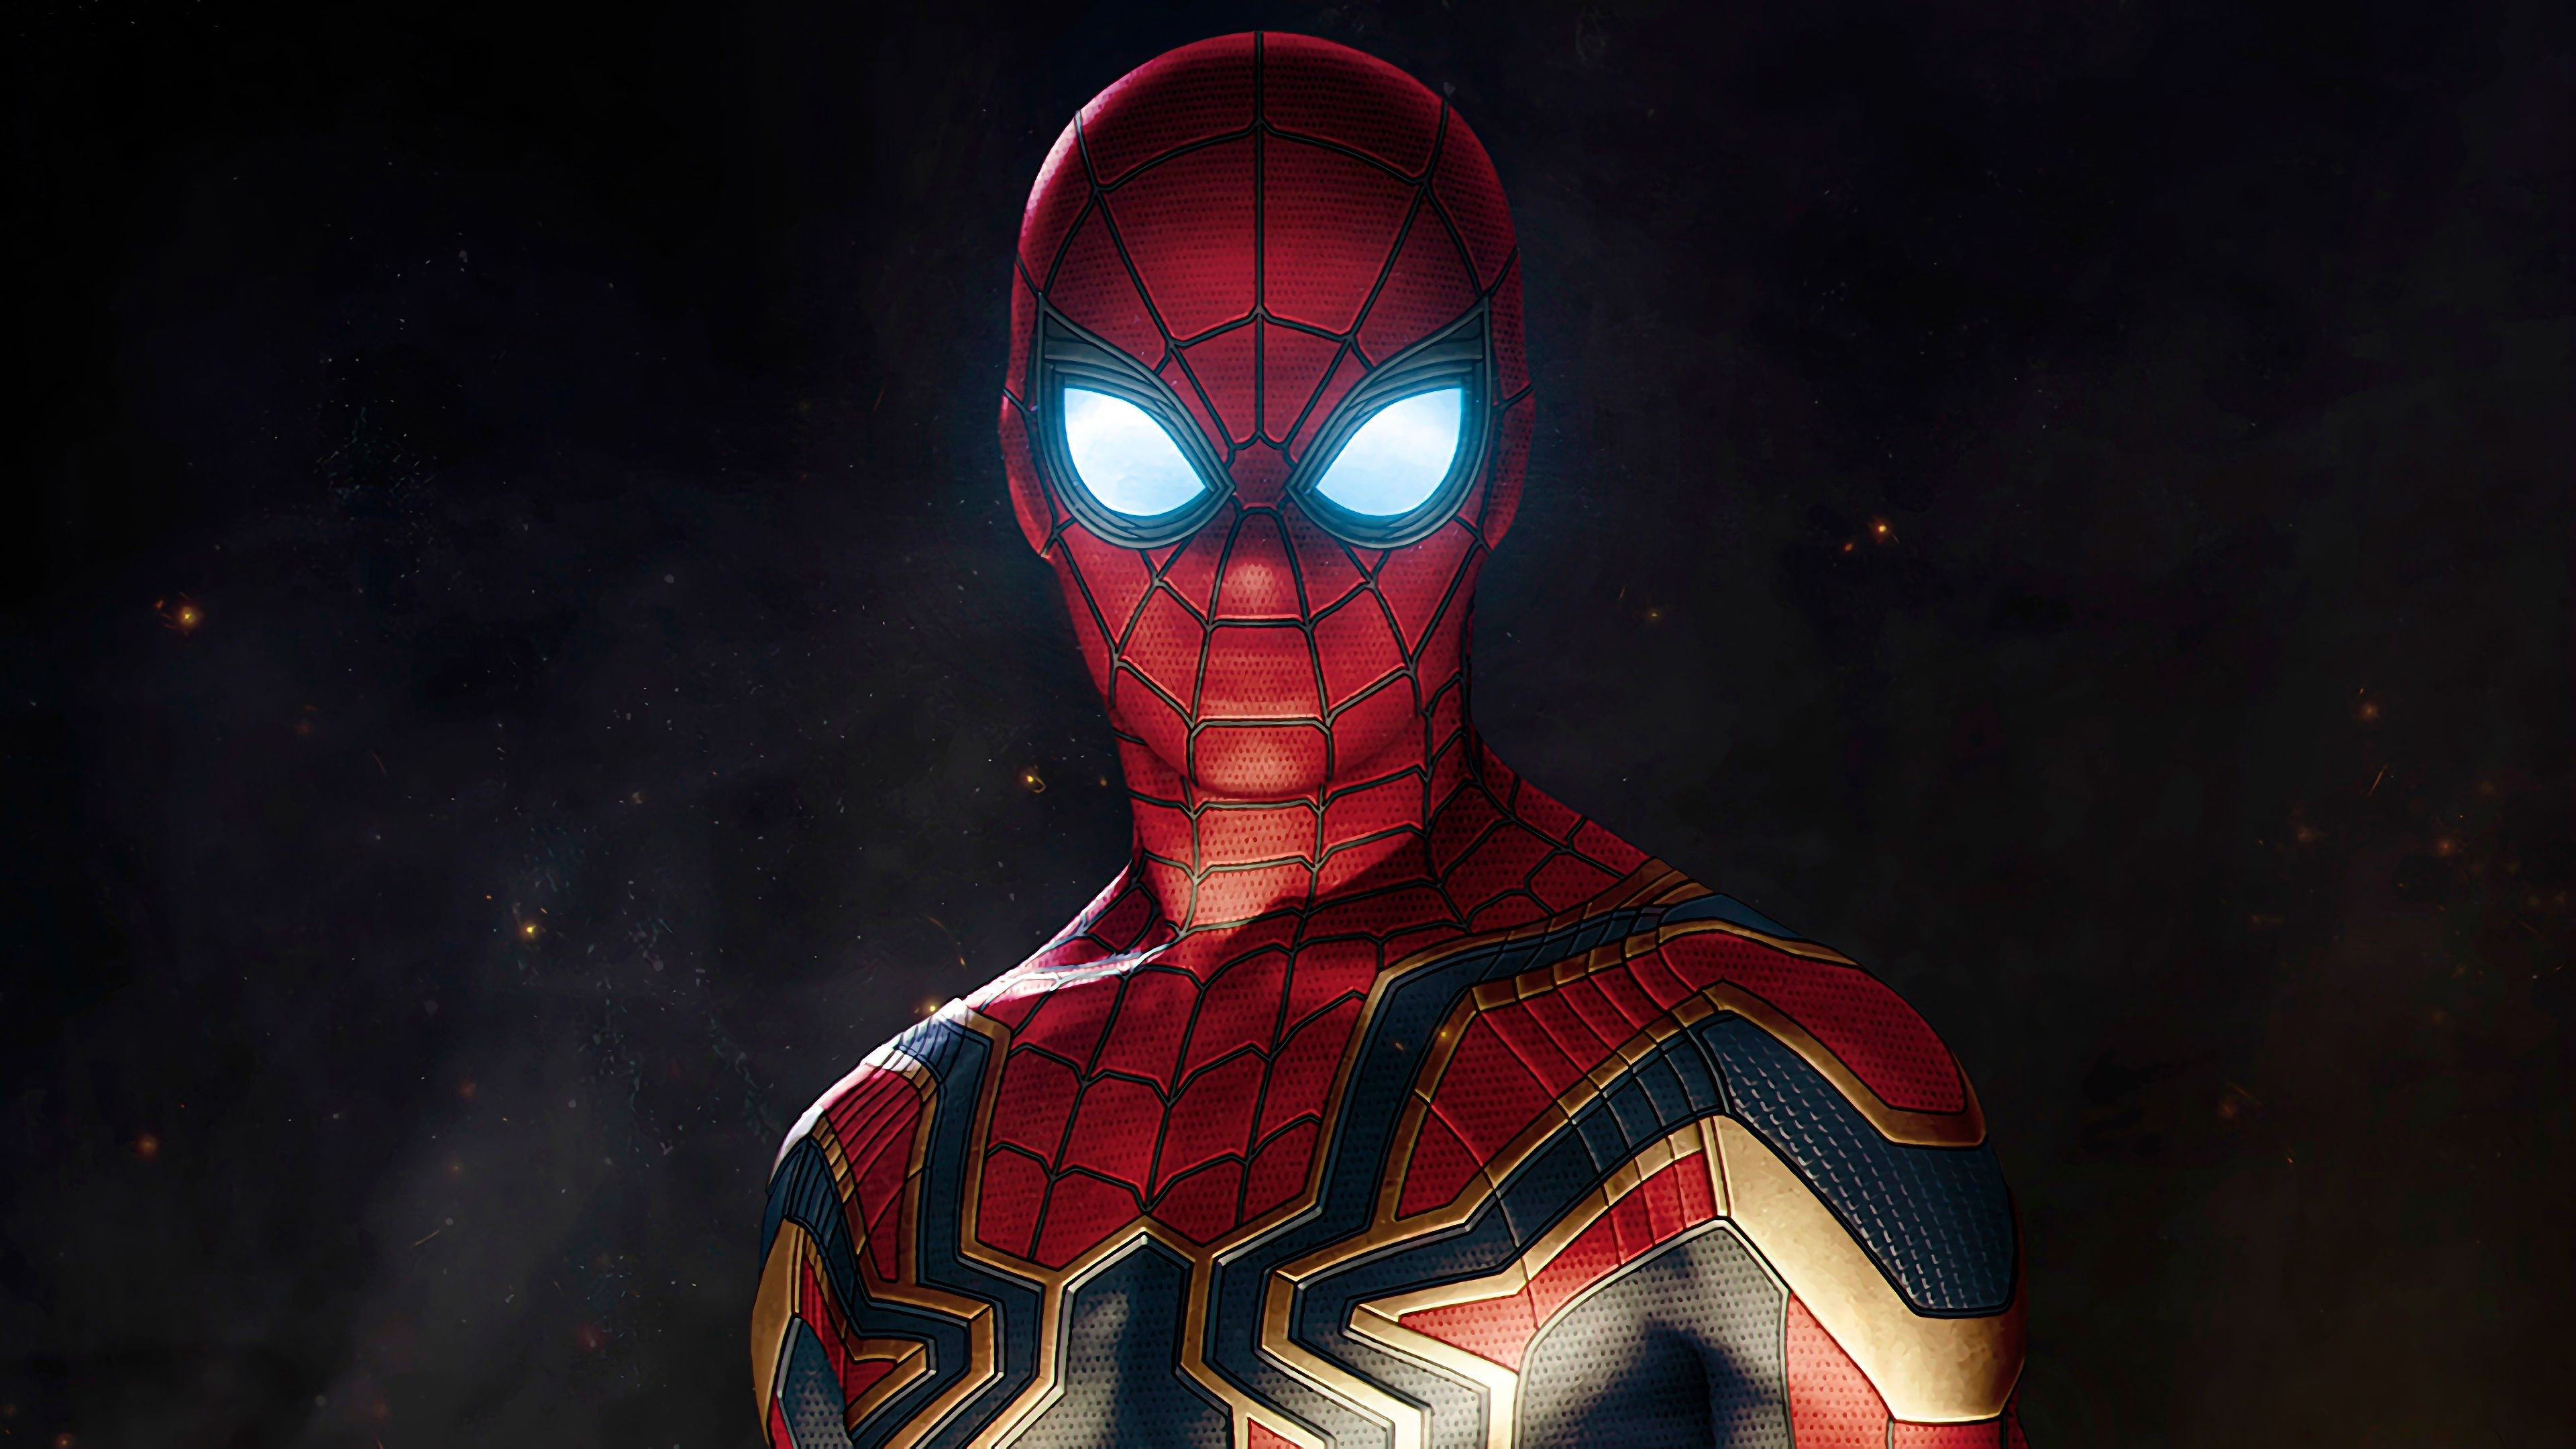 Spider Man Wallpapers Top Free Spider Man Backgrounds